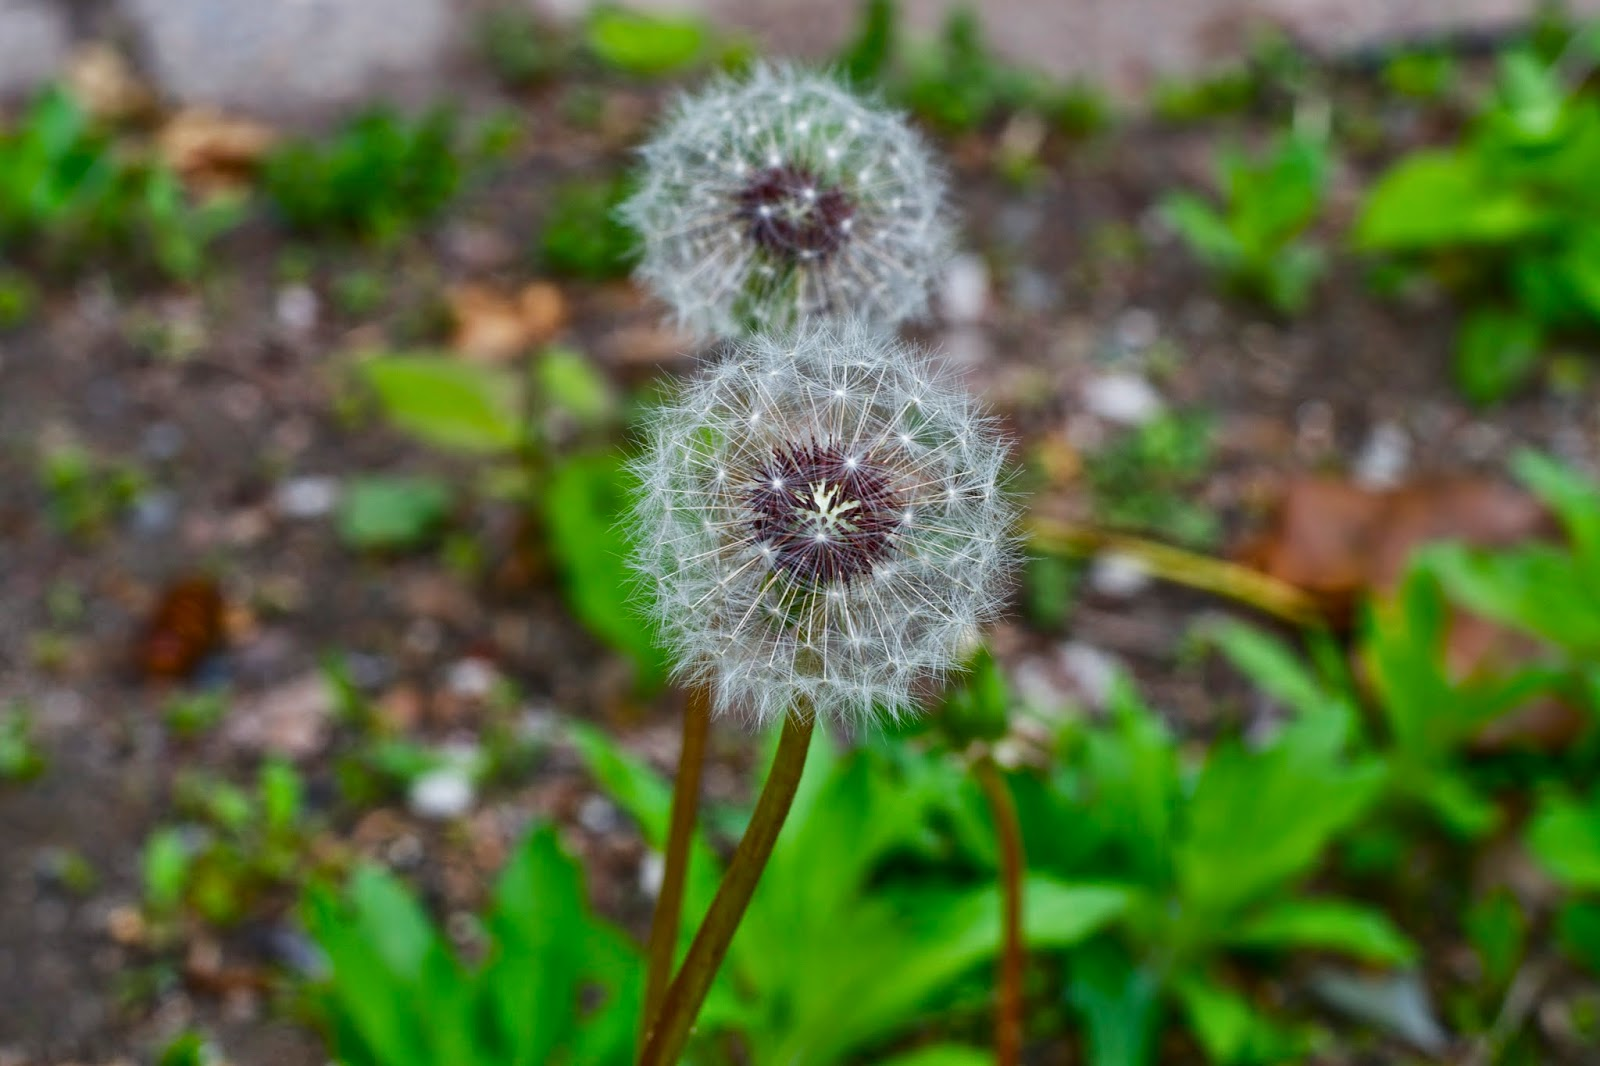 Dandelions gone to seed... Make a wish and set it free!